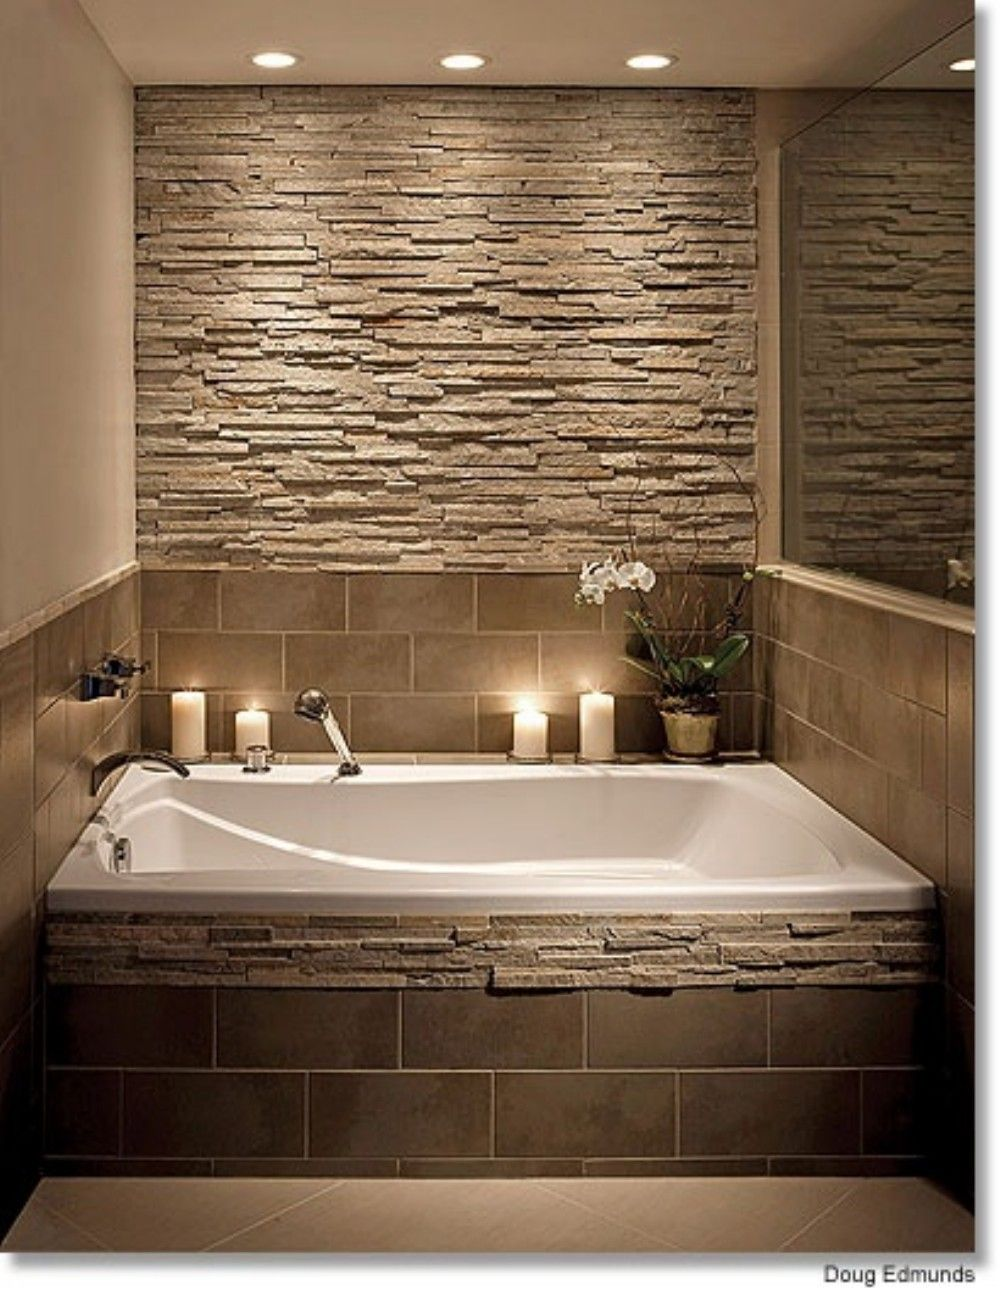 cosy small bathroom tile ideas. Stunning Cozy Small Bathroom Shower with tub Tile Design Ideas  https cooarchitecture